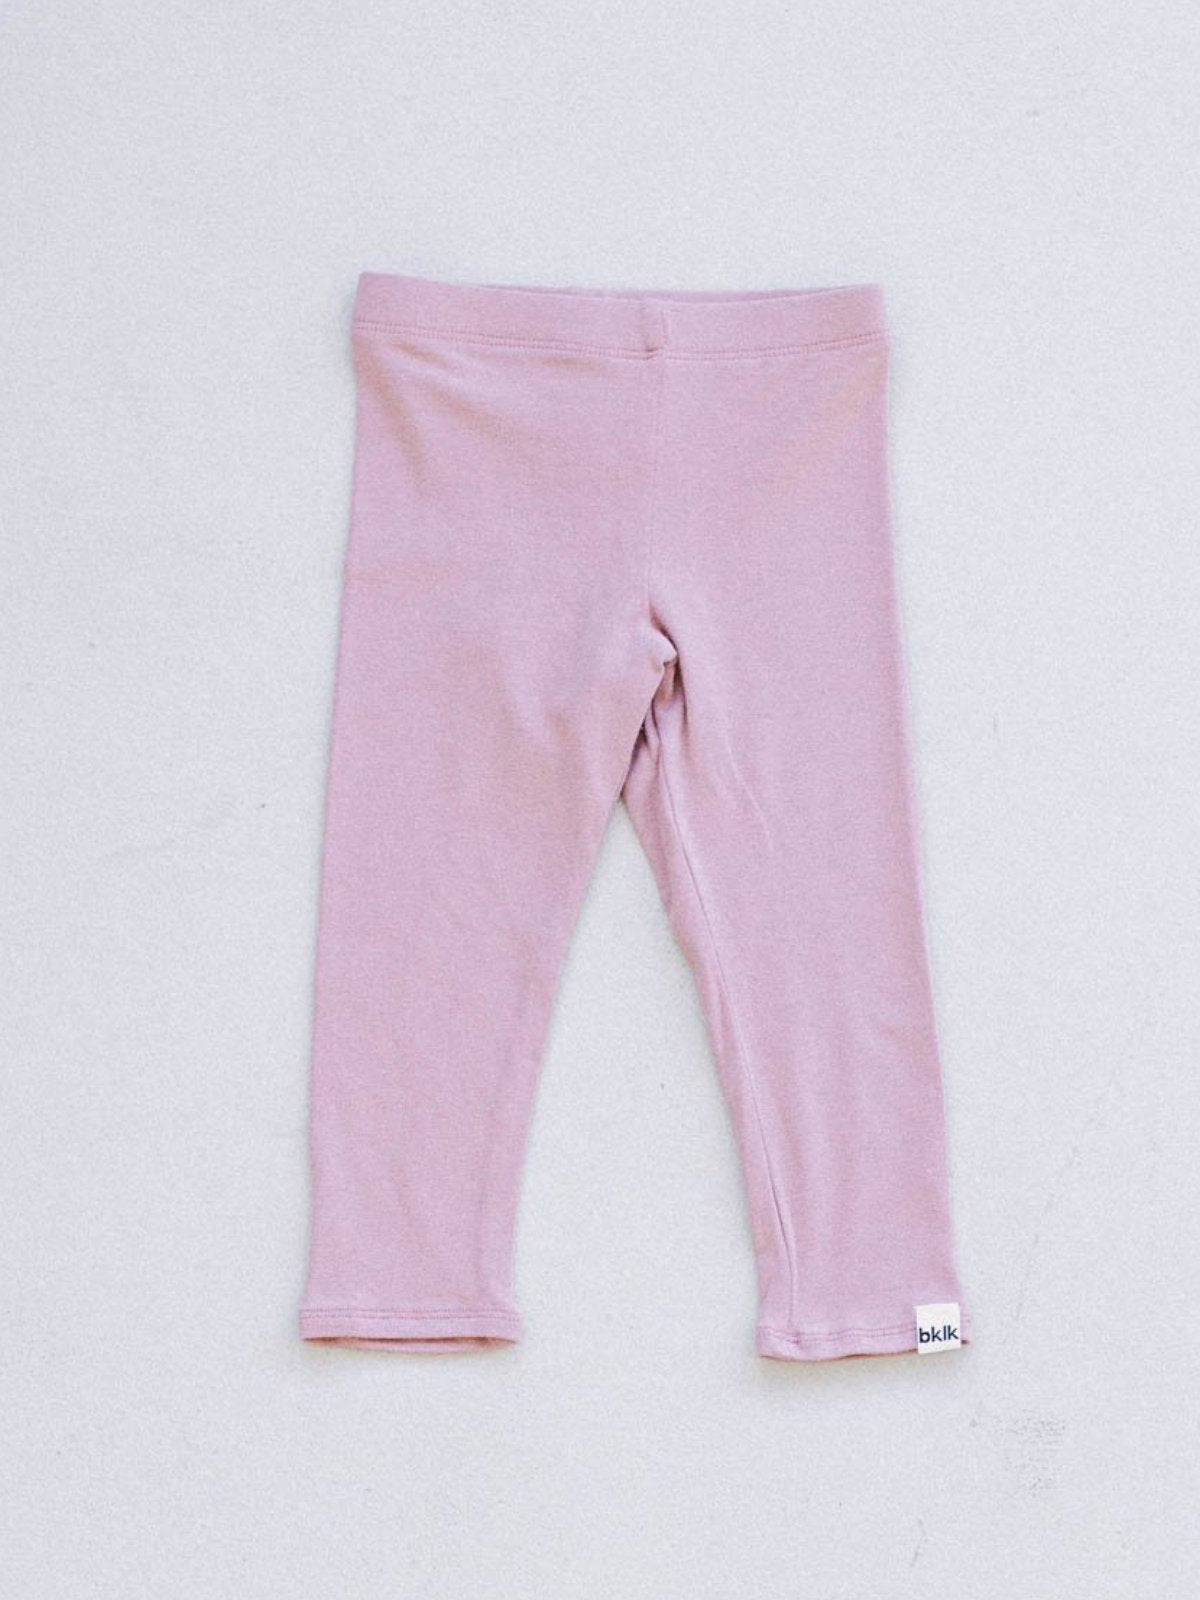 "pink, gender neutral colors, fitted body t-shirt and pants, soft jersey fabric. Sizes, baby, toddler, big kid, 6 mo 12 mo 1 yr 2 yr 3yr 4yr 5yr 6yr 7yr 8yr old. Ethically + sustainably made in  California, USA. long in back, Leggings w/ 1"" elastic"